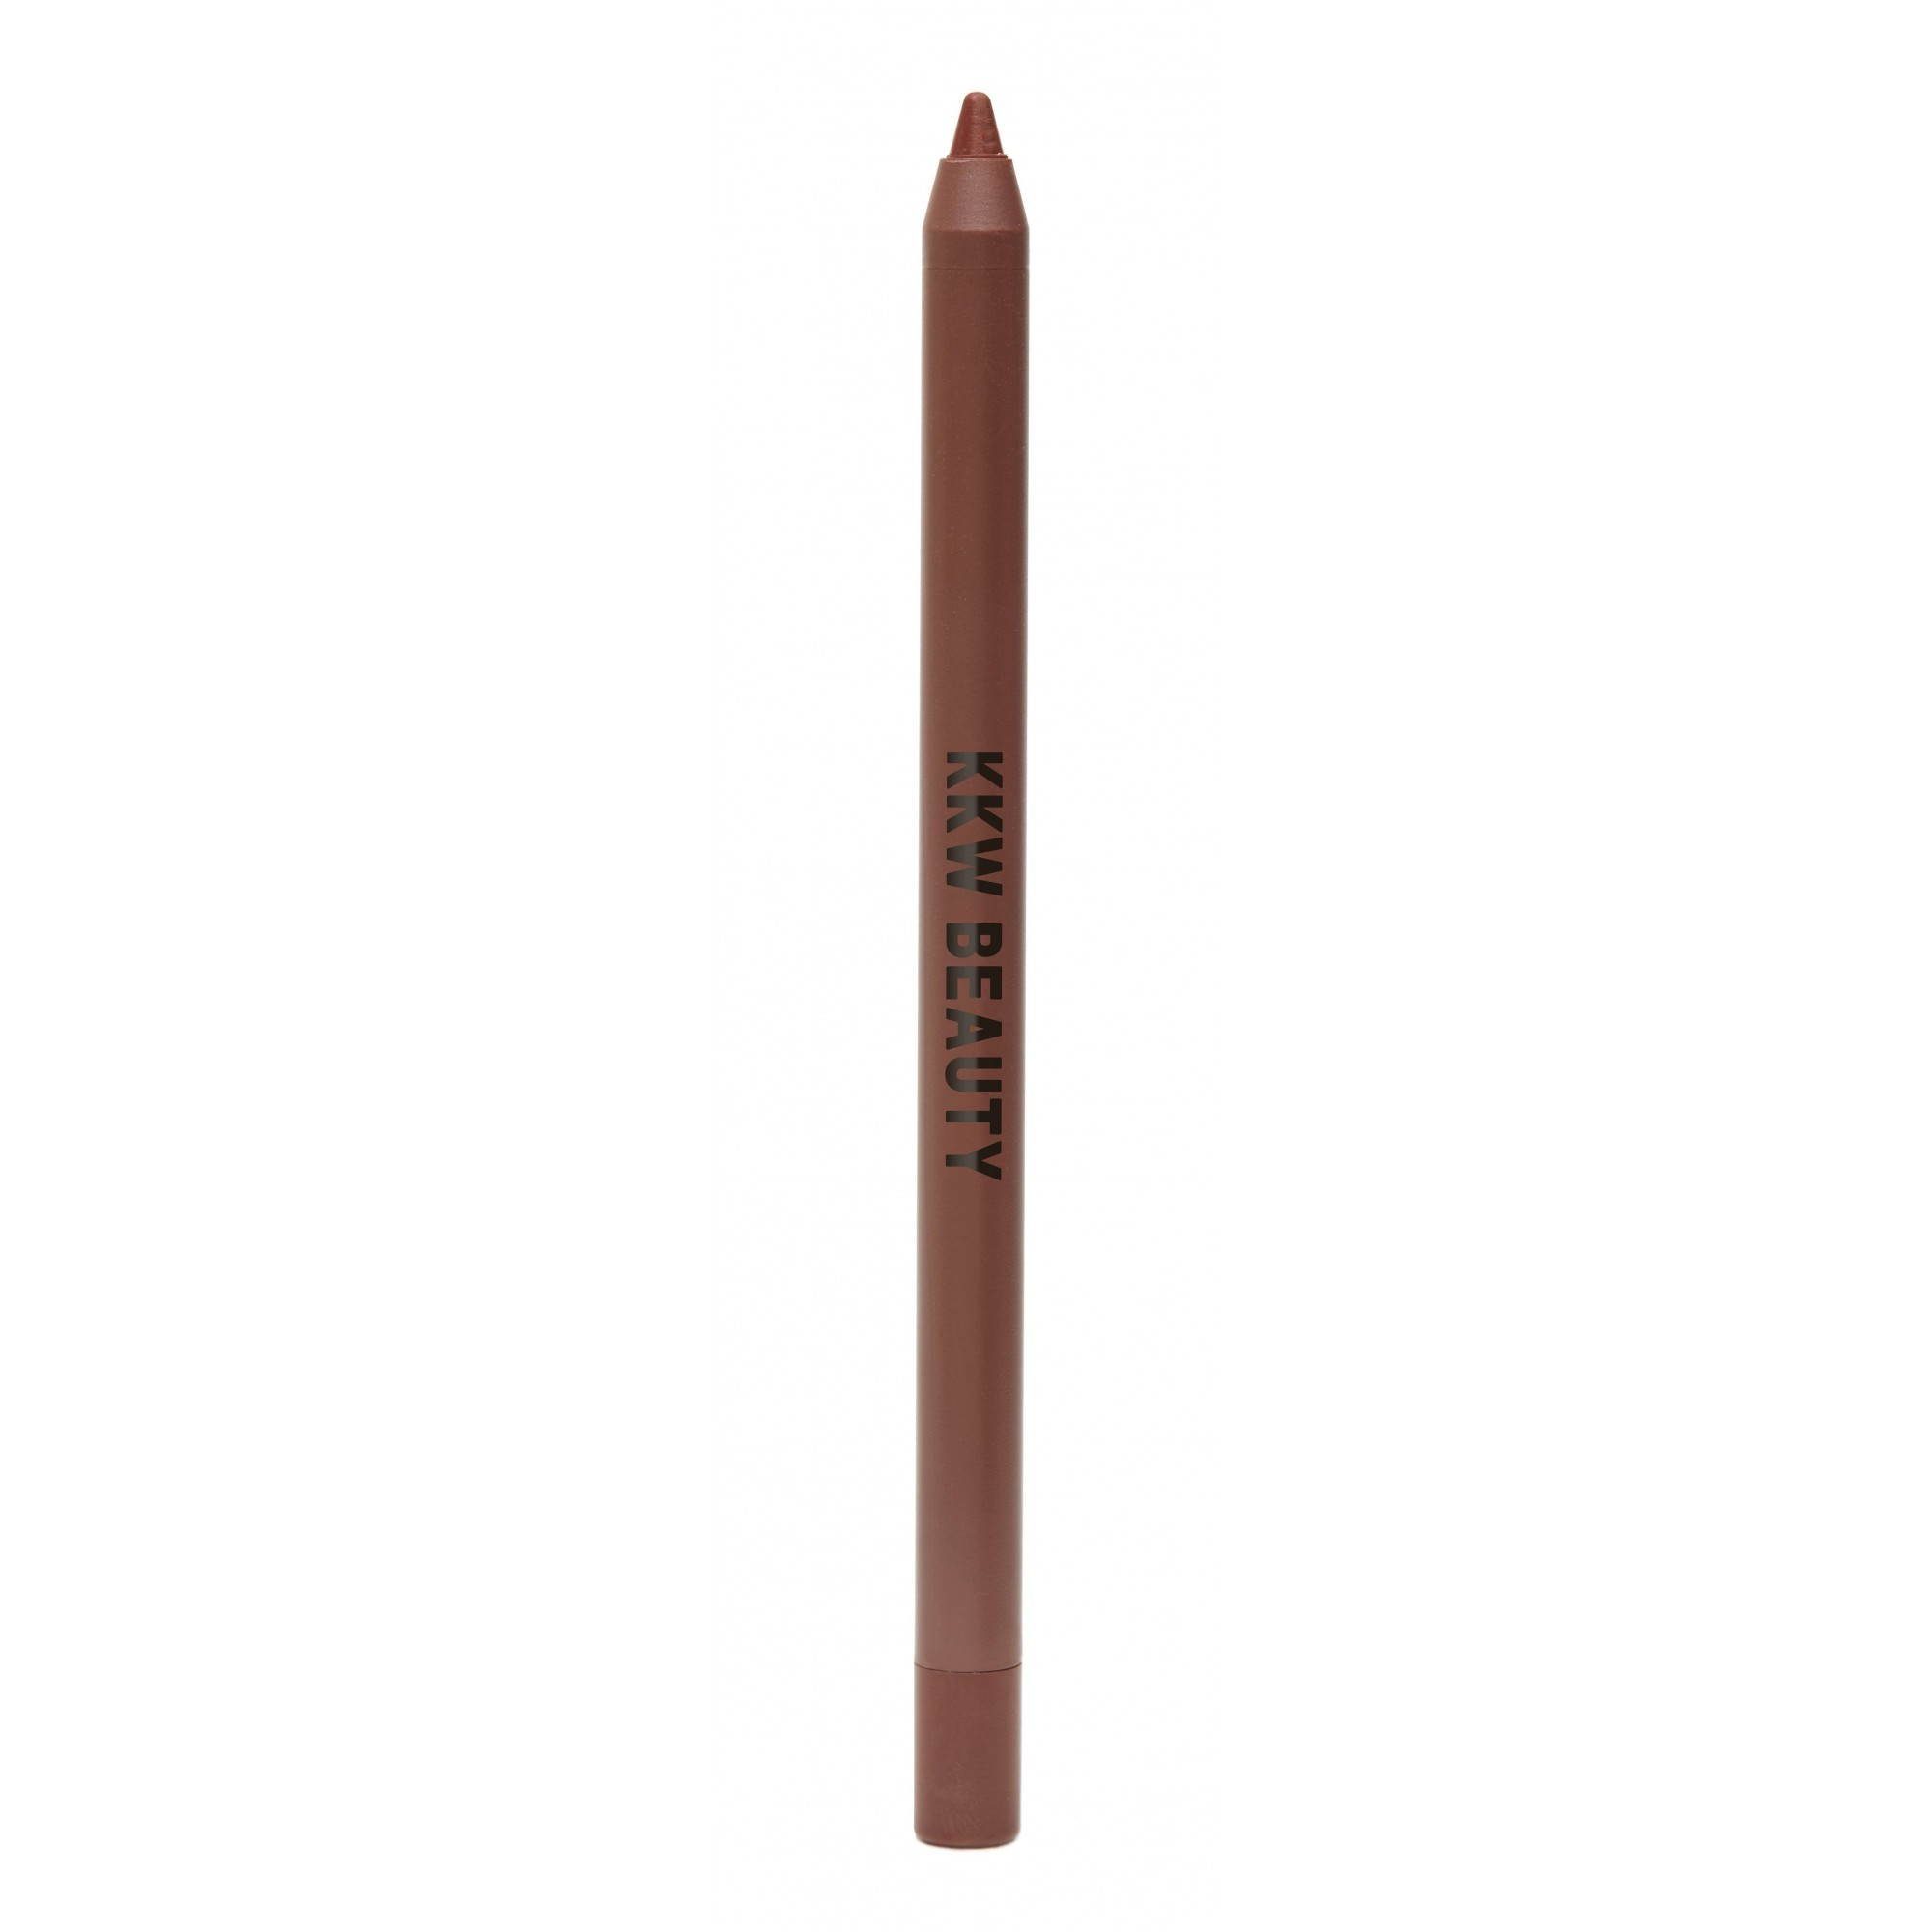 KKW Beauty Matte Cocoa Lip Liner - The Mattes Collection 90's Chic